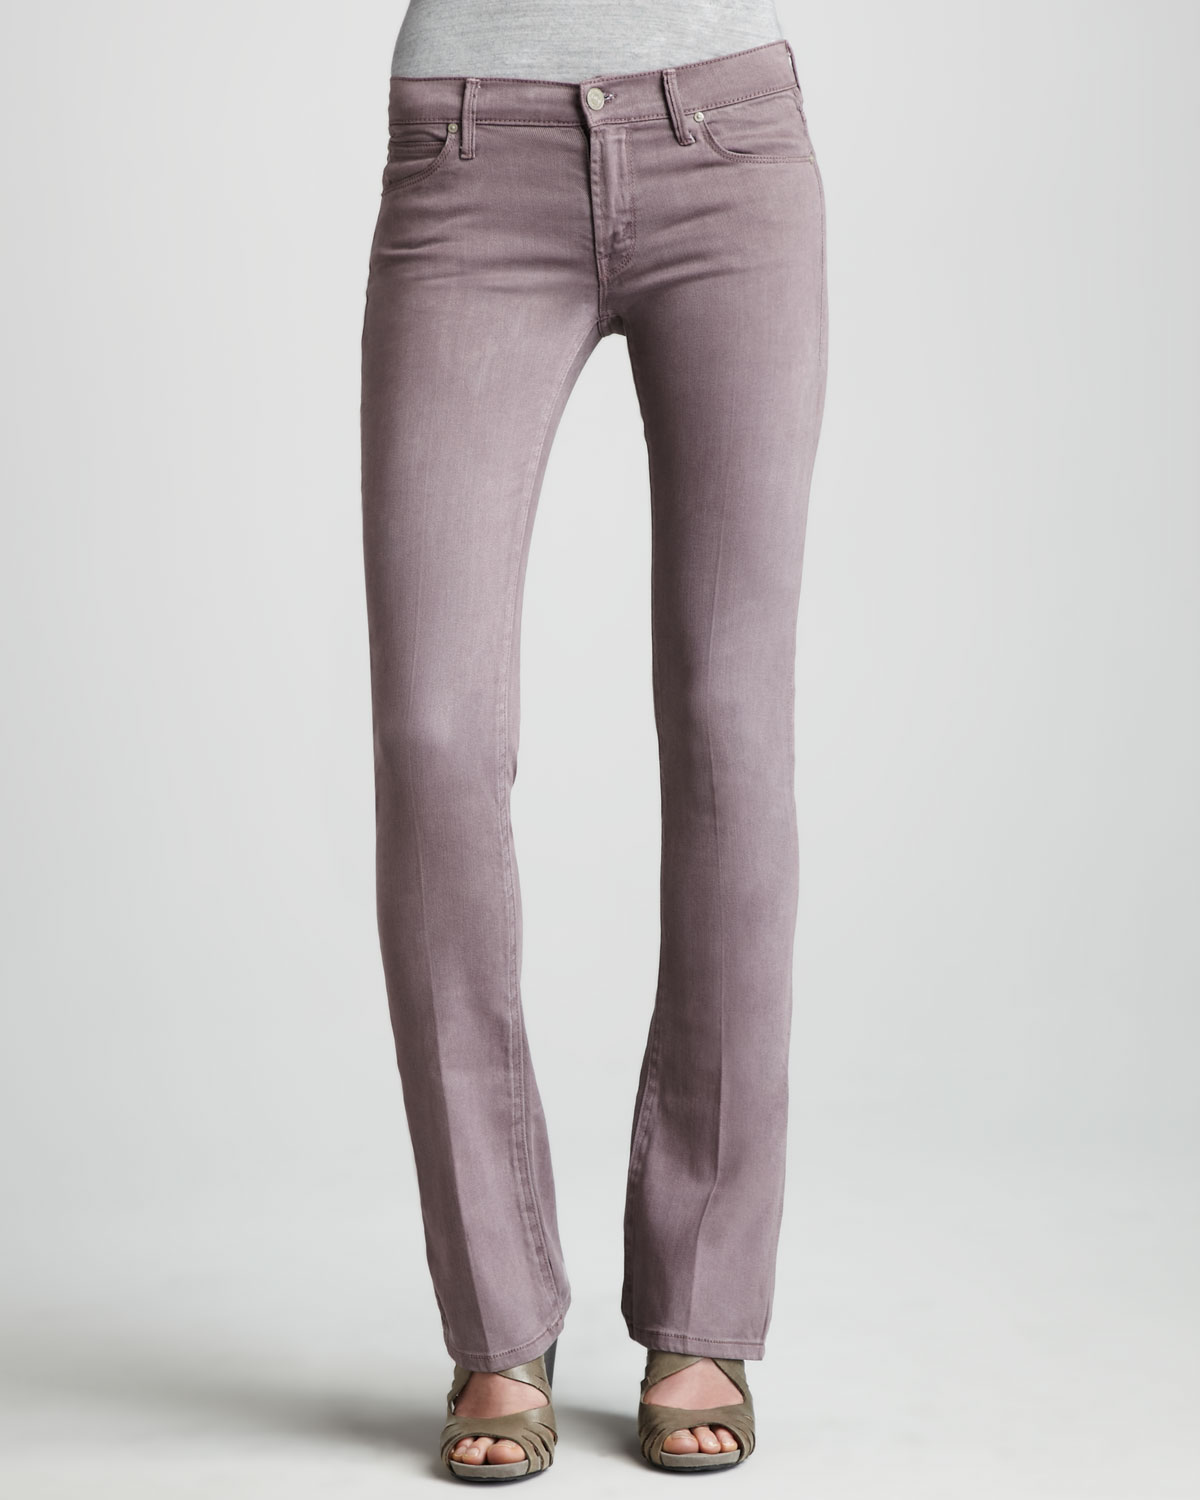 Mother The Runaway French Lilac Skinny Bootcut Jeans in Purple (32) | Lyst